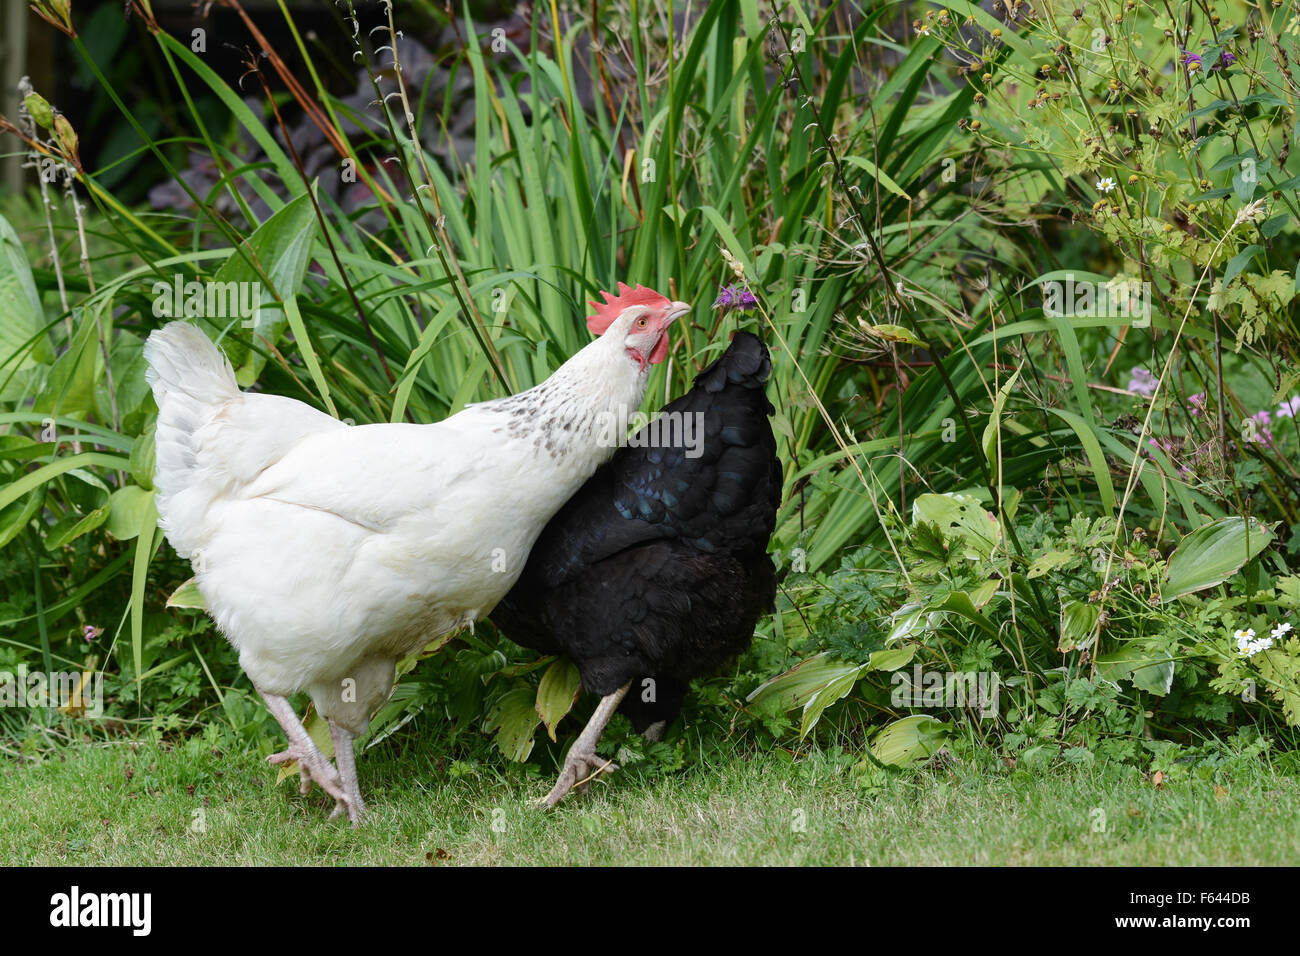 pet chicken roaming free range in garden spots an ear of wheat - and focuses on it intently - Stock Image